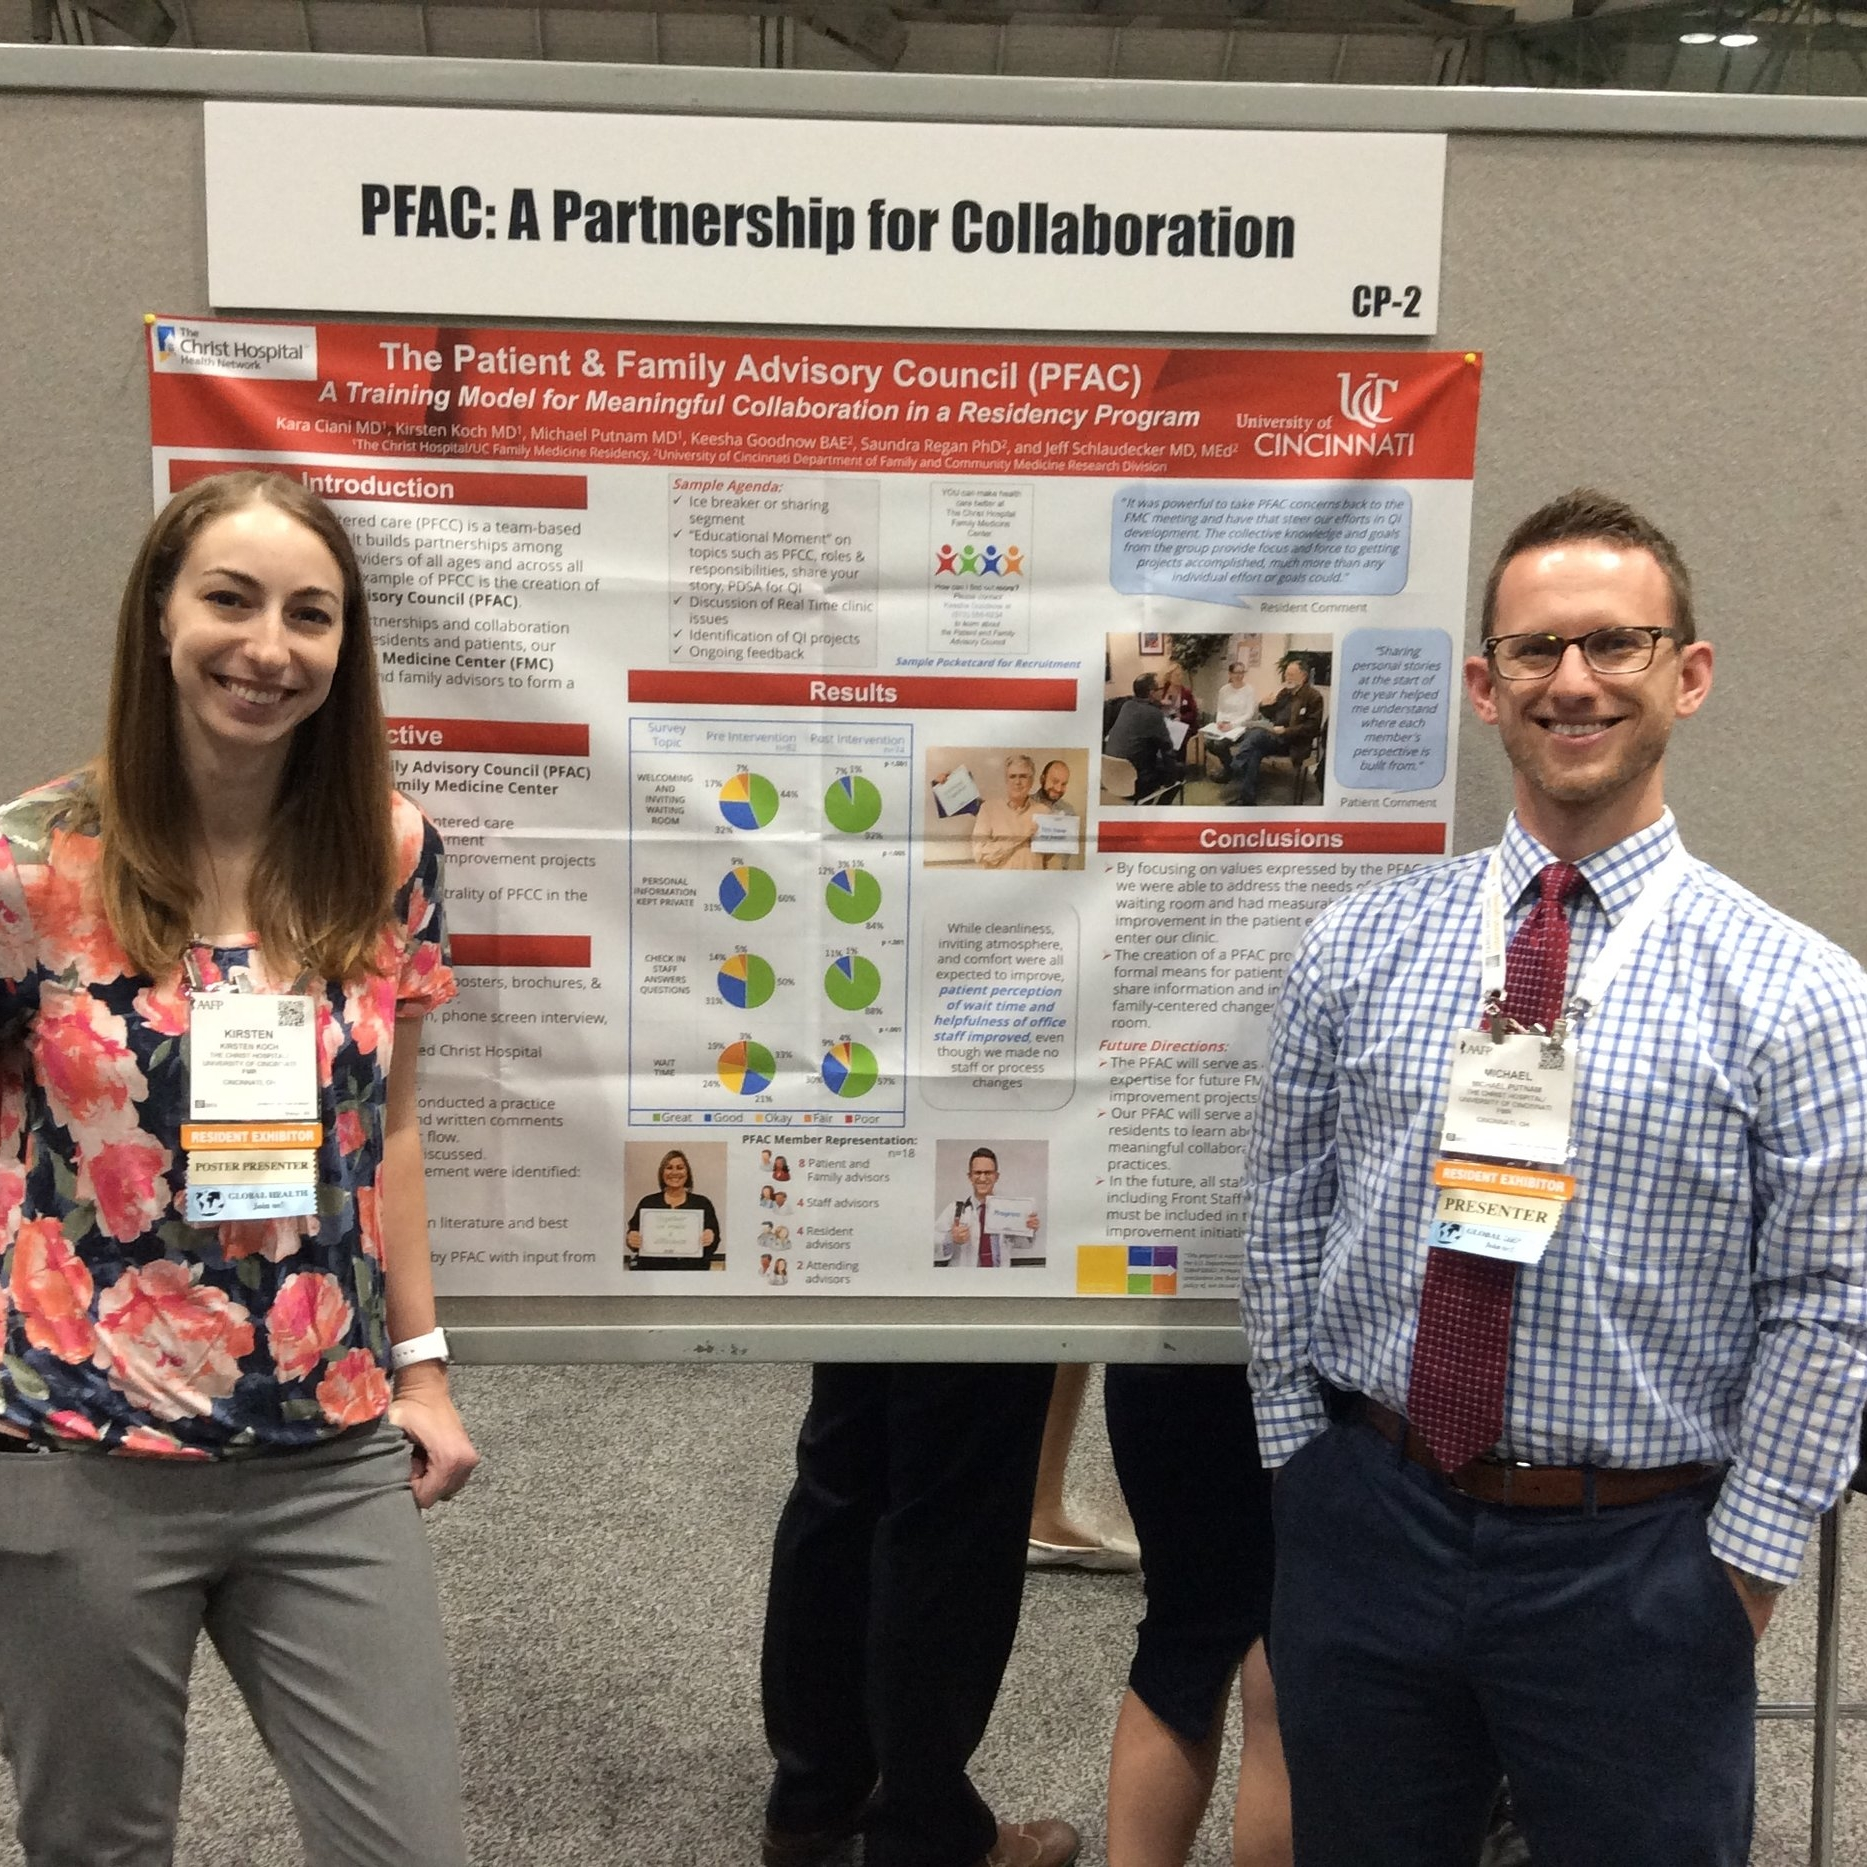 Two residents presenting the Patient and Family Advisory Council data and AAFP